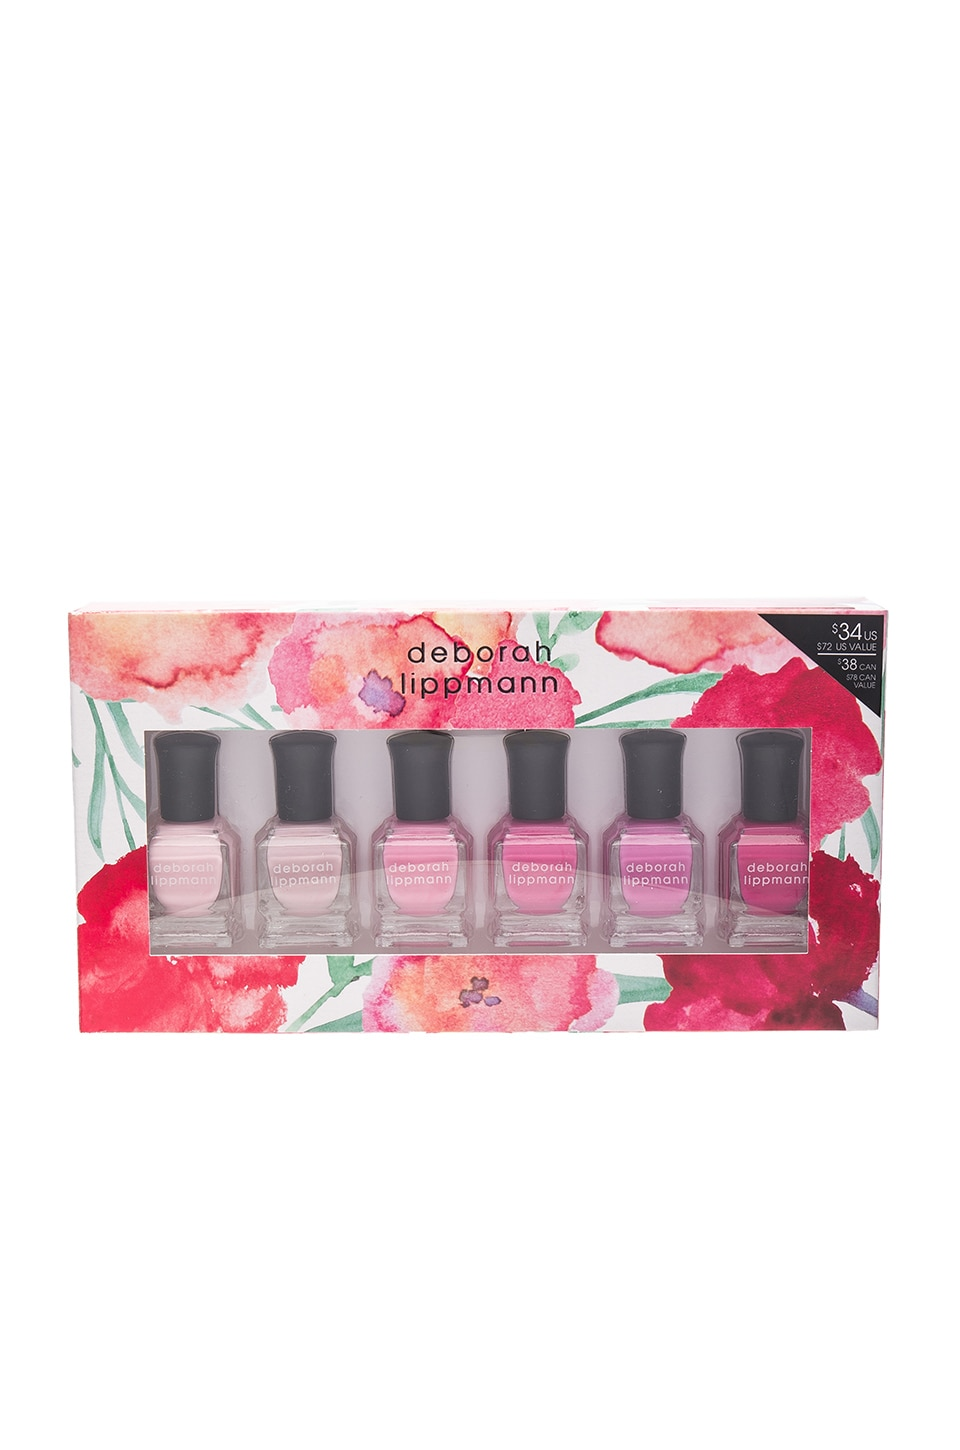 Deborah Lippmann 6 Piece Pink Nail Lacquer Set in Pretty In Pink